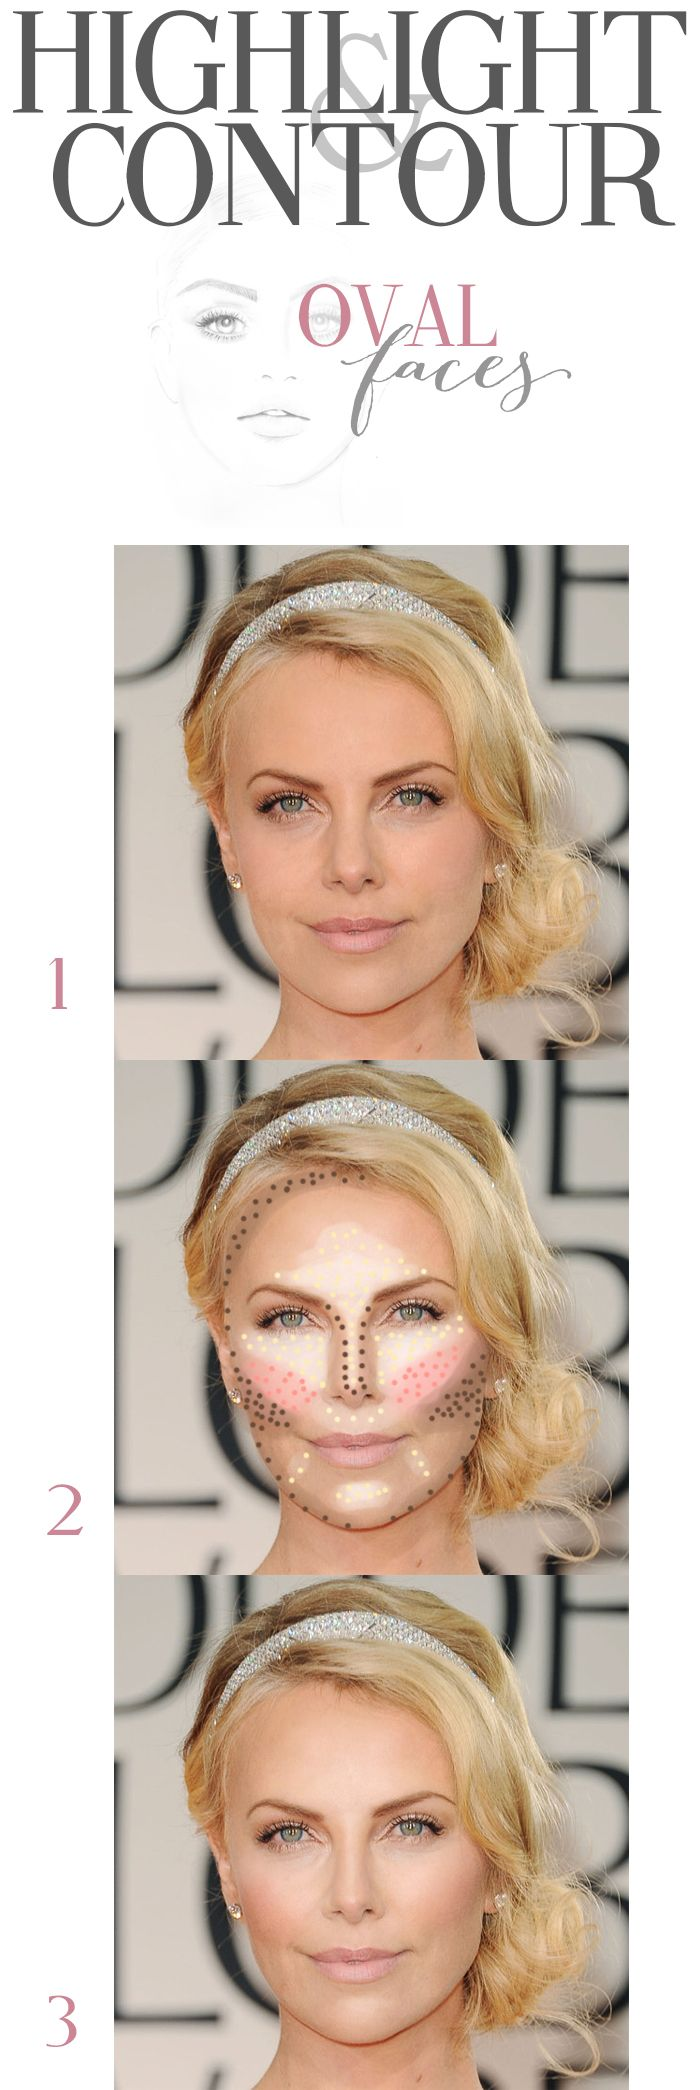 How to highlight and contour based on the shape of your face.